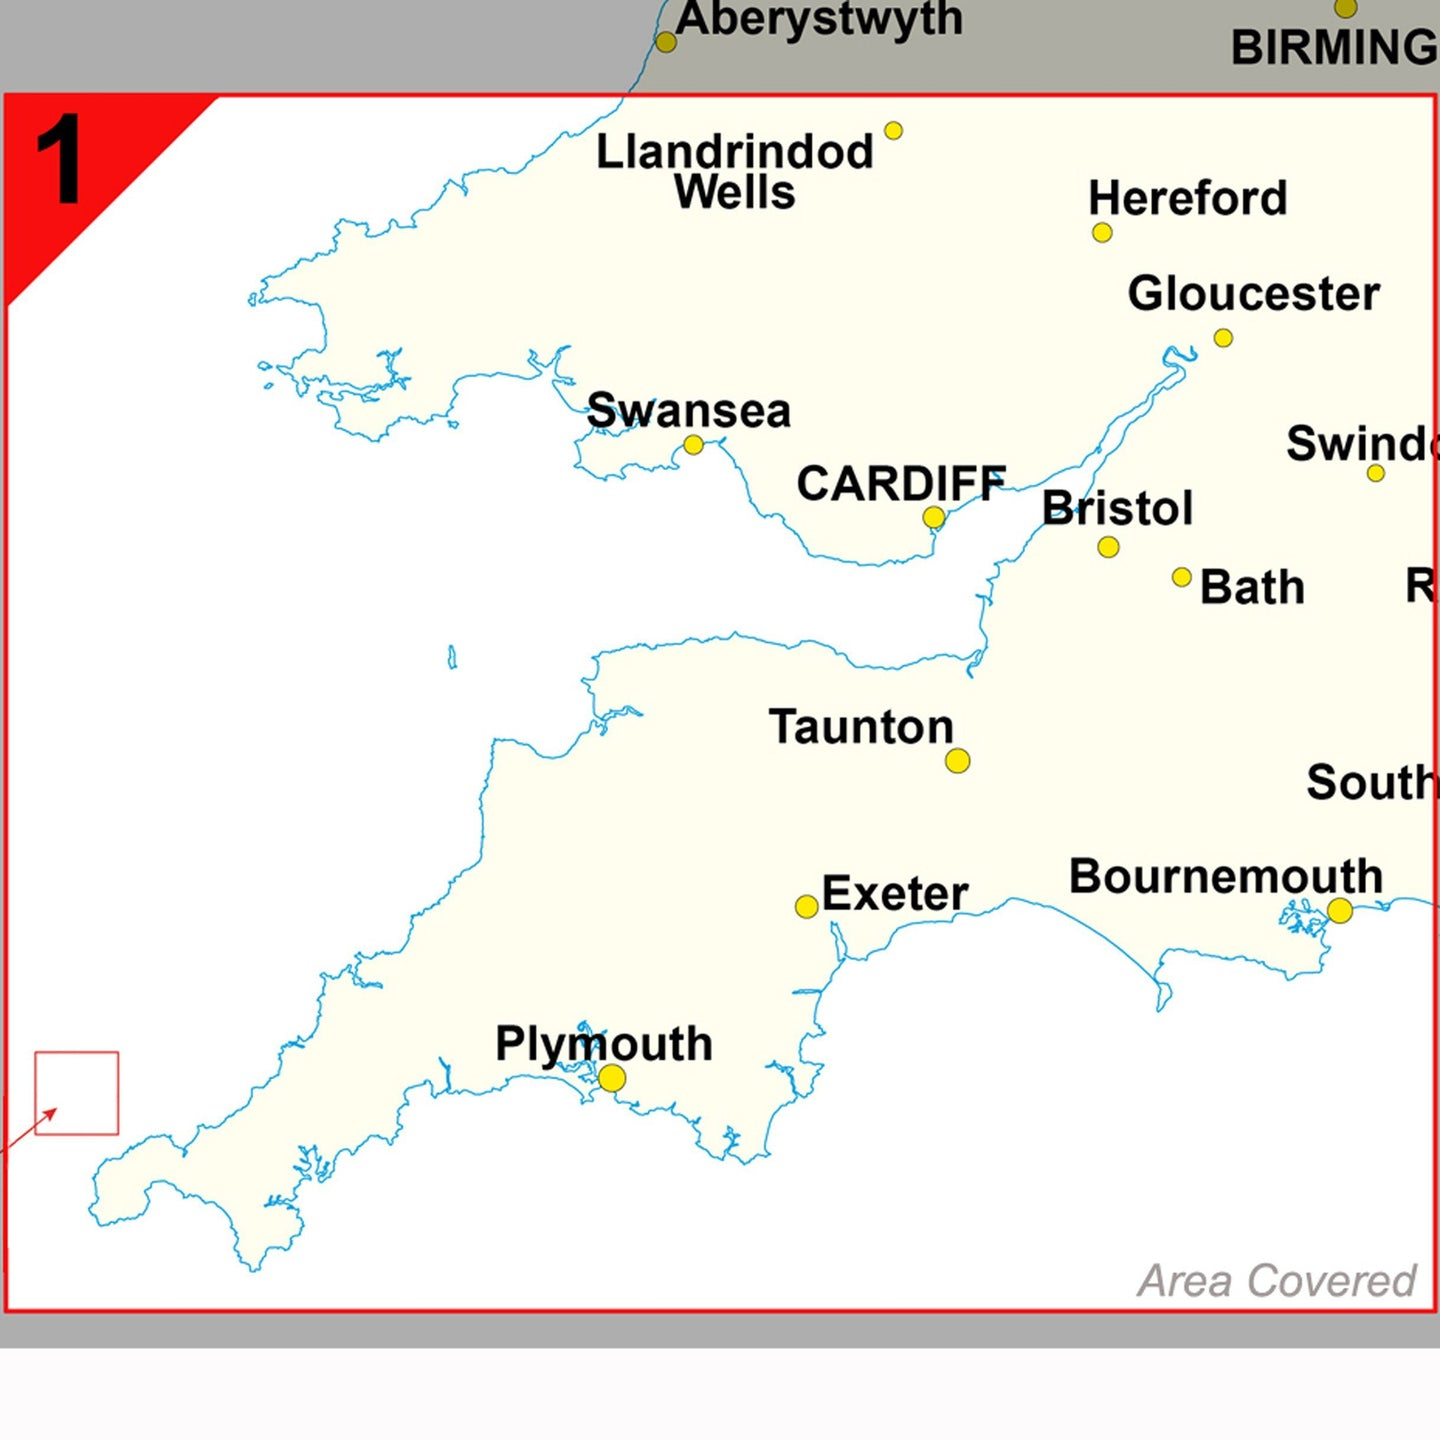 Map Of Bristol England.Southwest England And South Wales Cardiff And Bristol Postcode Wall